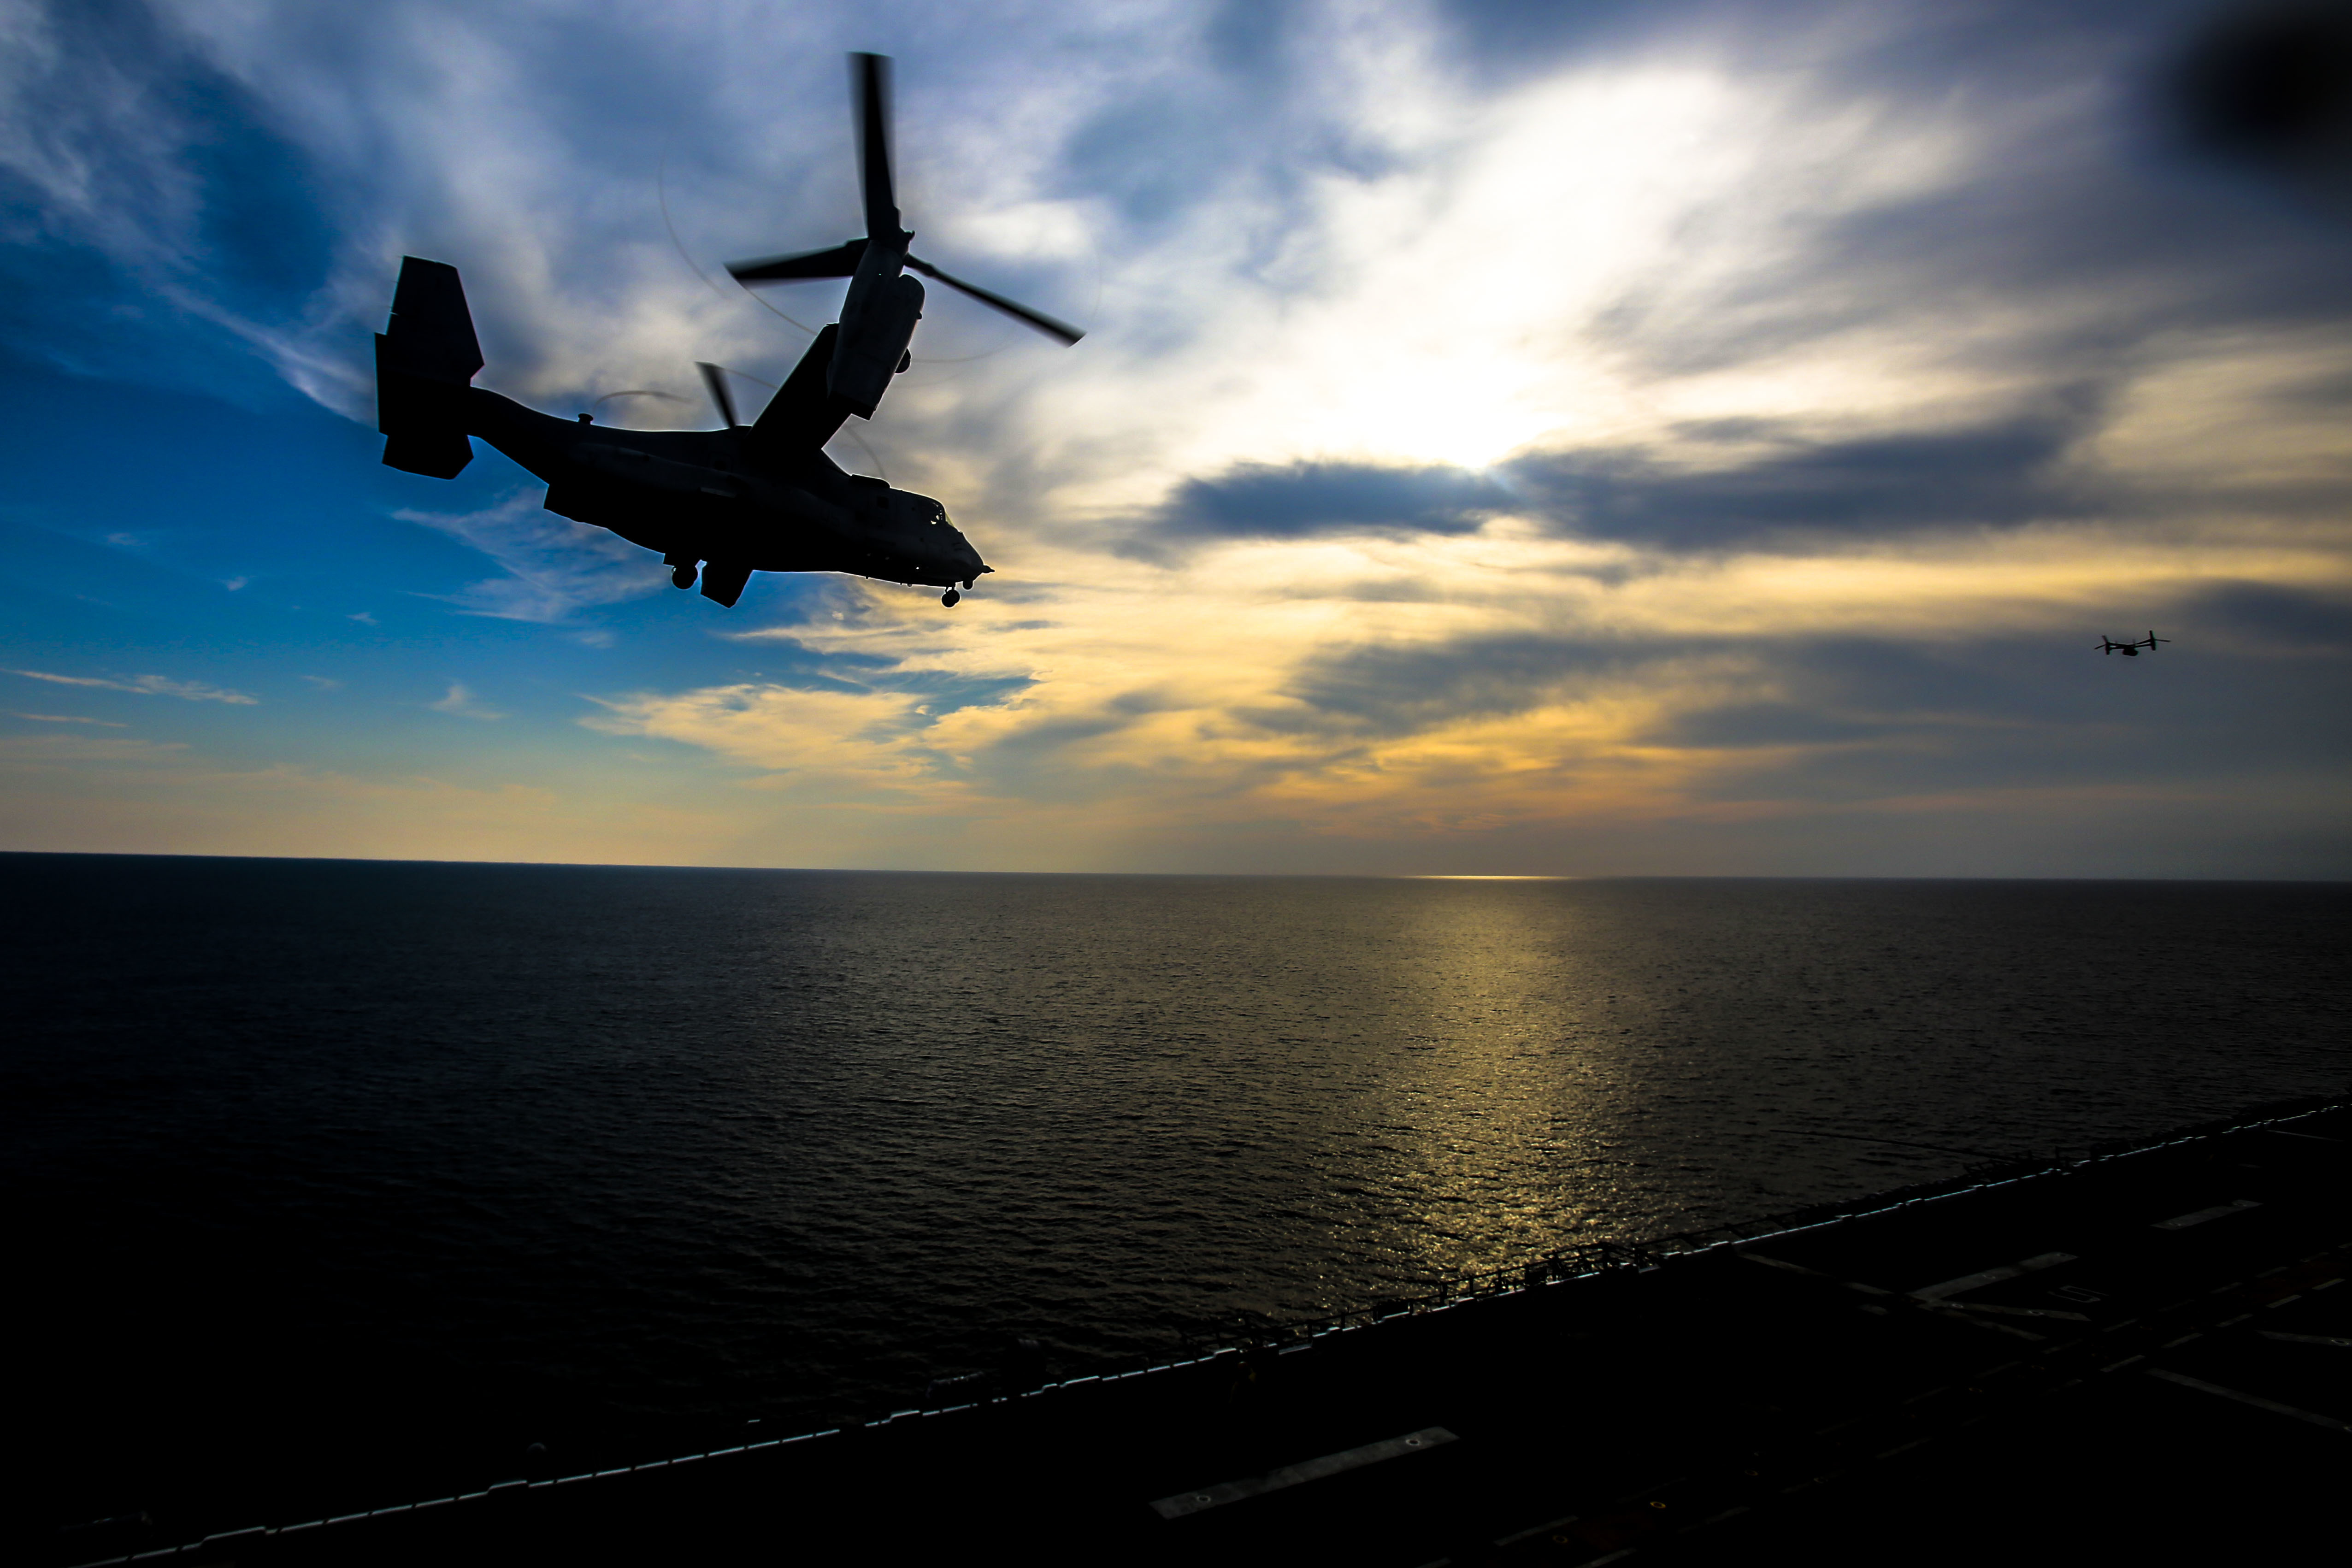 A U.S. Marine Corps MV-22B Osprey with Marine Medium Tiltrotor Squadron 162 (Reinforced), 26th Marine Expeditionary Unit (MEU), takes off from the amphibious assault ship USS Iwo Jima (LHD-7) as part of Combined Composite Training Unit Exercise (COMPTUEX) in the Atlantic Ocean. (Cpl. Jon Sosner/Marine Corps)